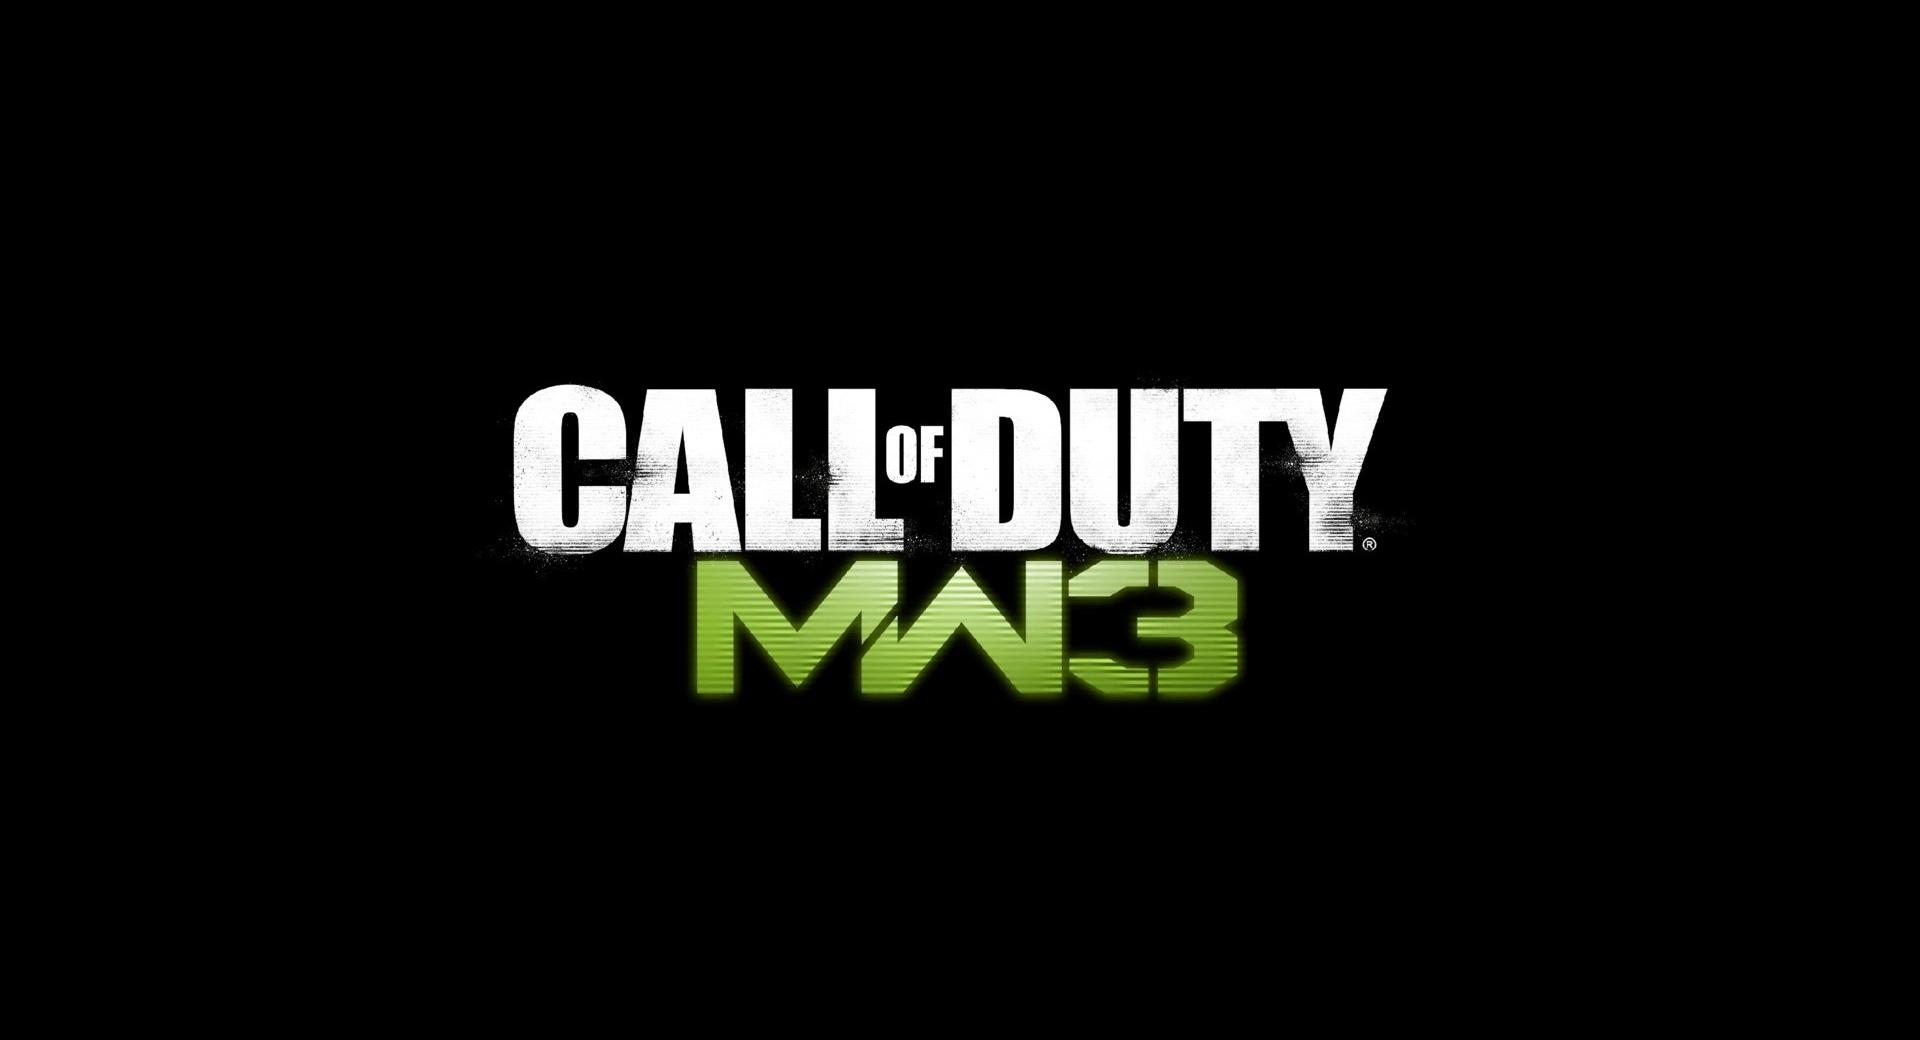 Call Of Duty MW3 Logo wallpapers HD quality